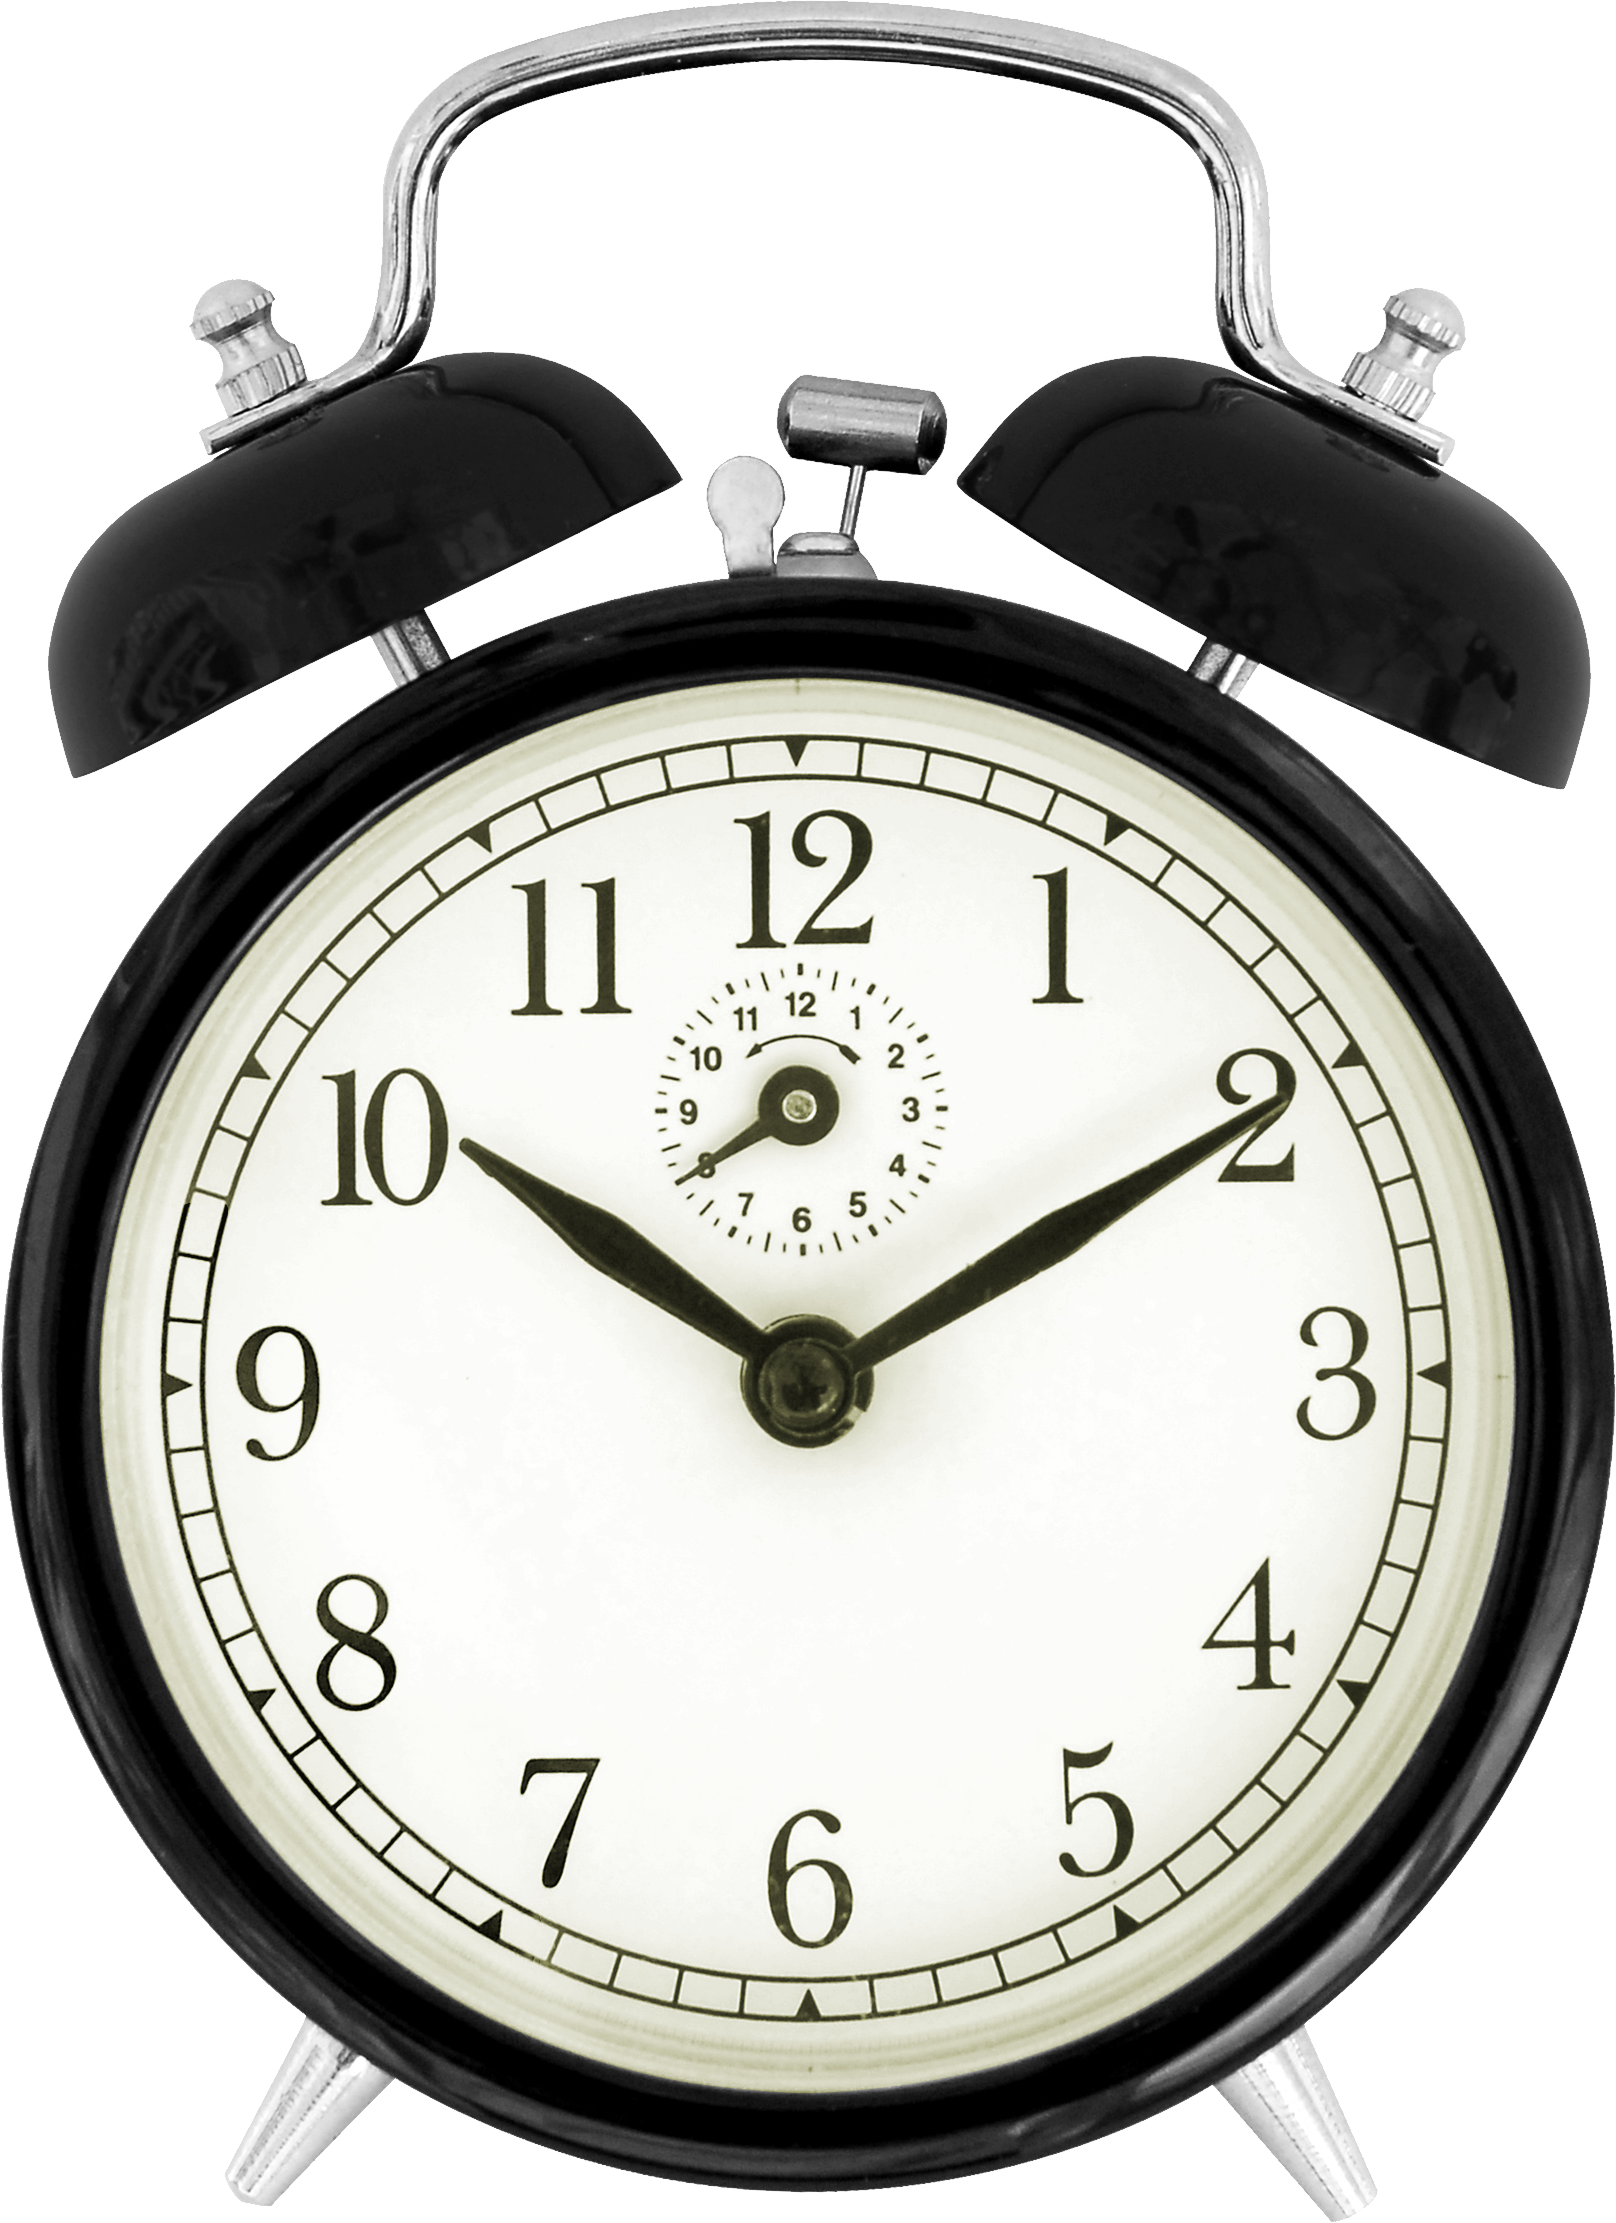 Alarm clock png. Time clipart photo transparentpng